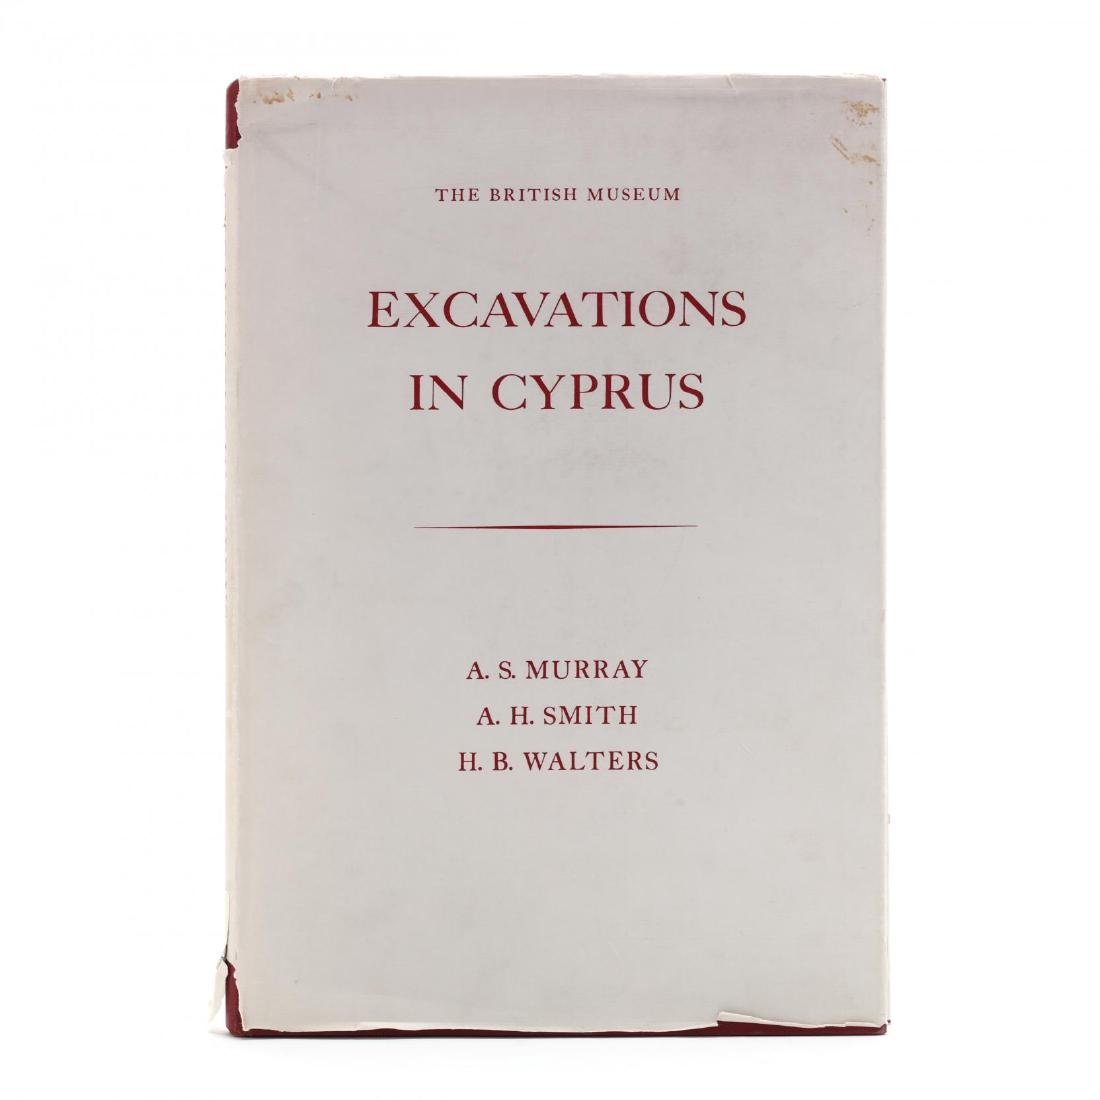 Murray, Smith, and Walters.  Excavations in Cyprus